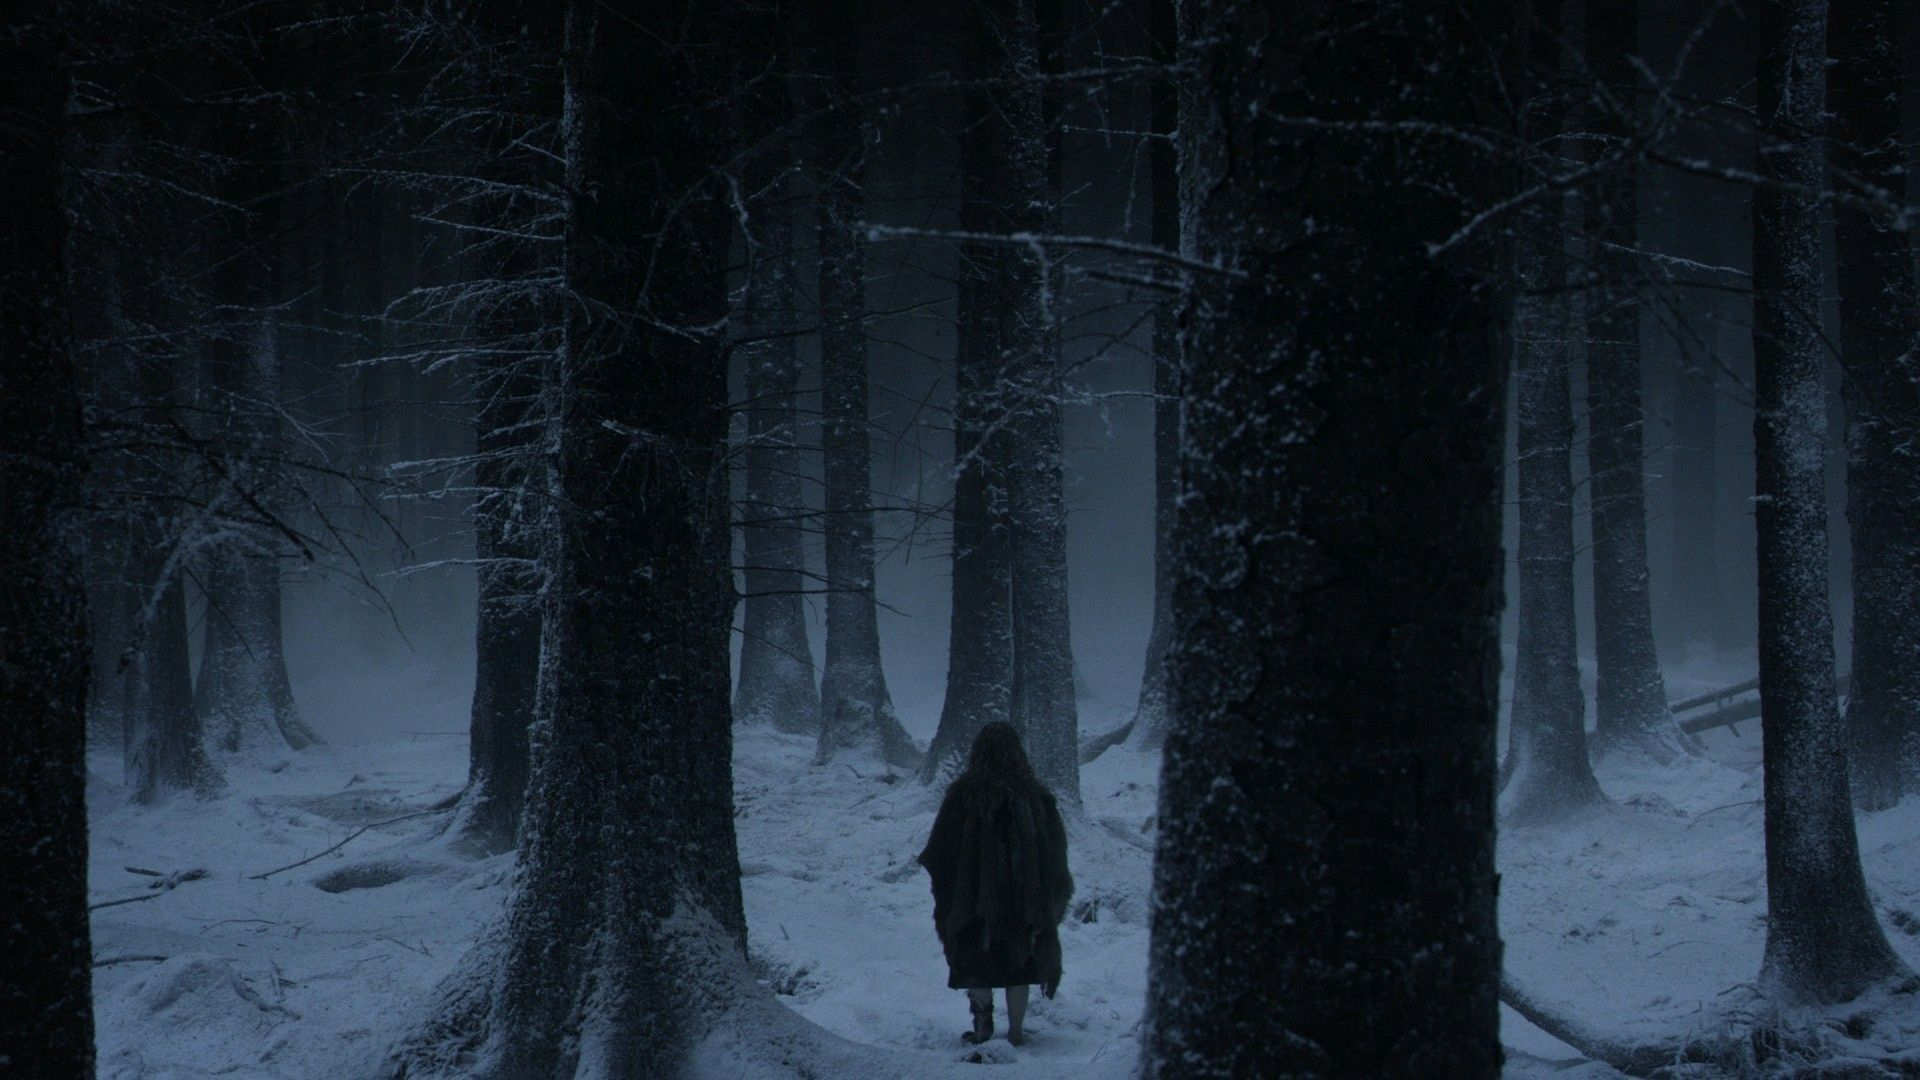 Thrones nights watch tv series forests night (1920x1080, nights, watch, series, forests, night)  via www.allwallpaper.in